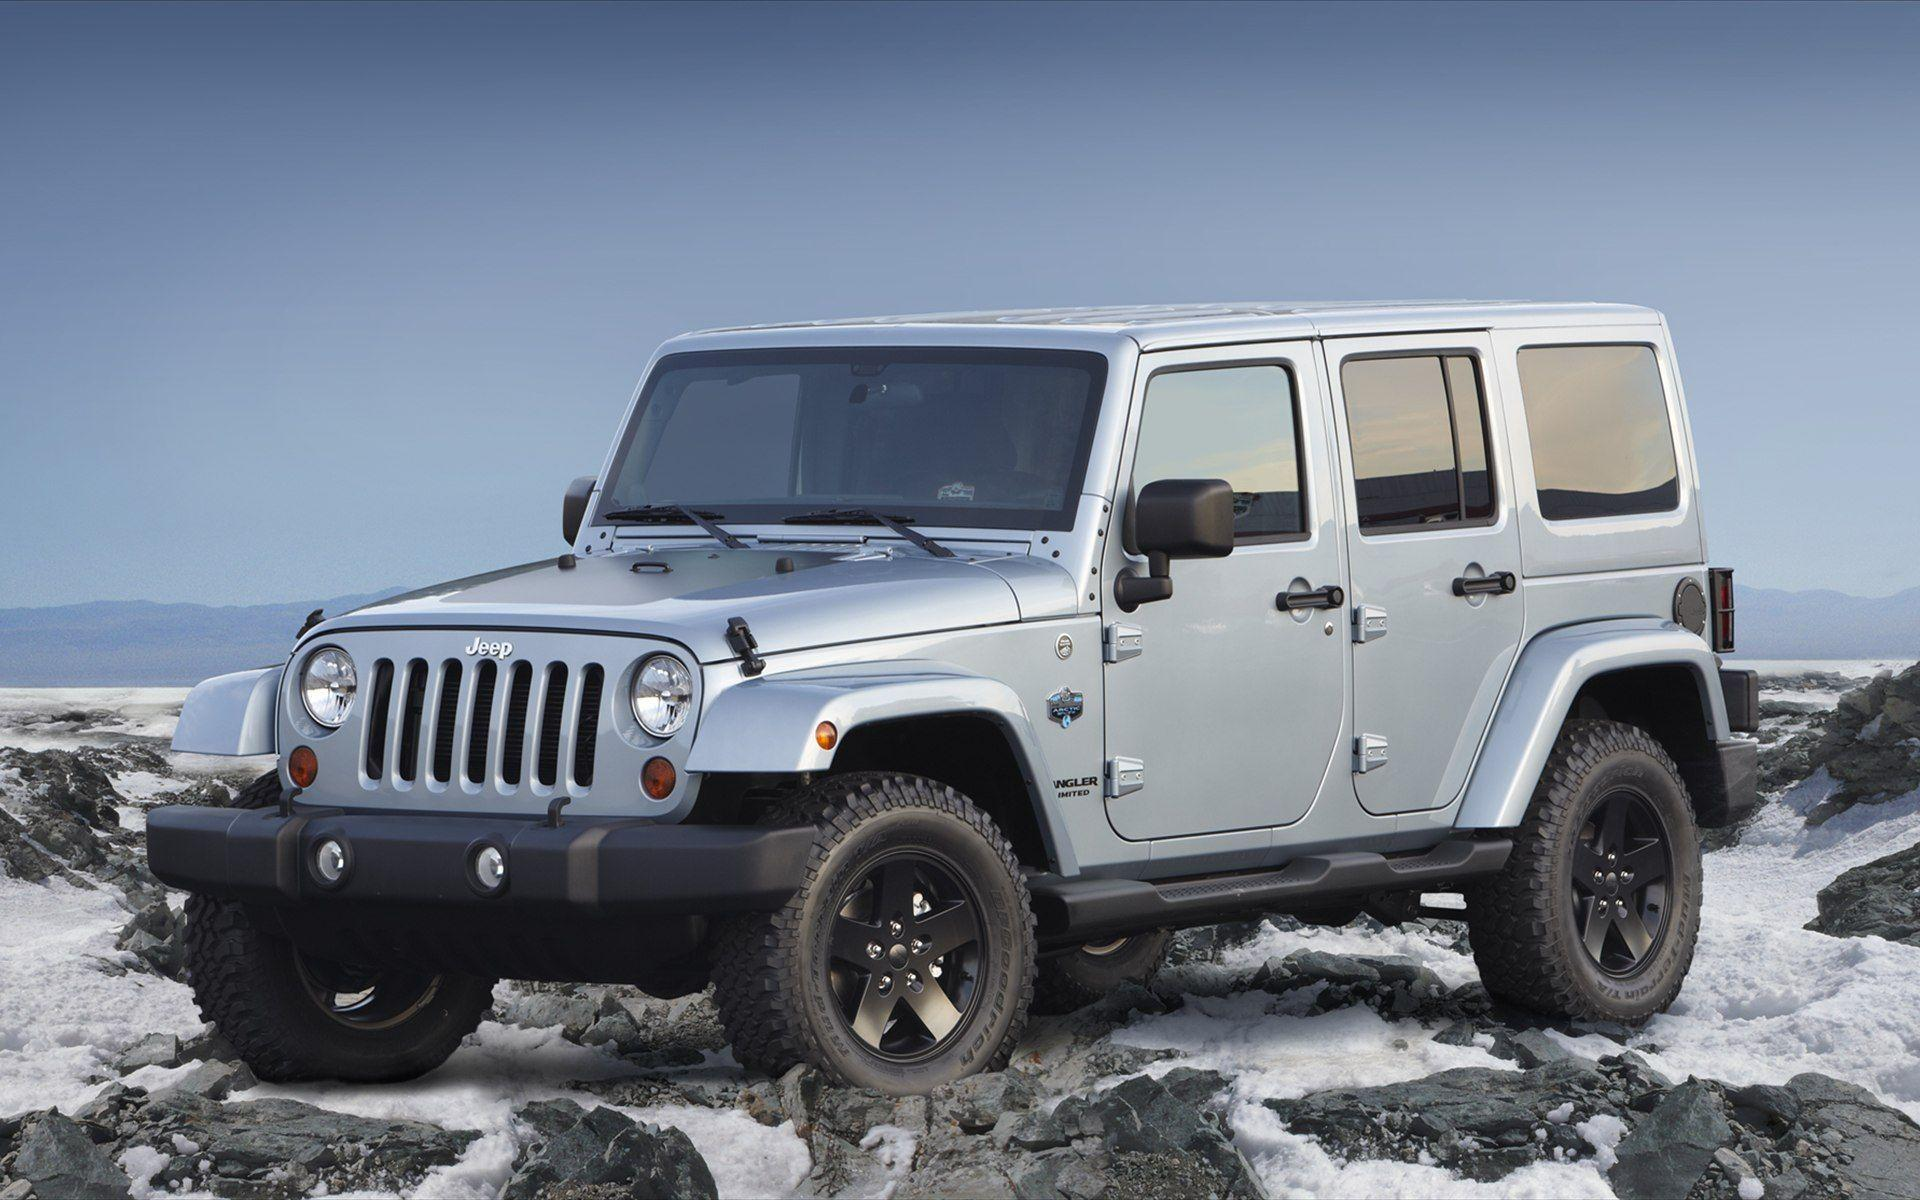 2012 Jeep Wrangler Unlimited Arctic Wallpaper | HD Car Wallpapers